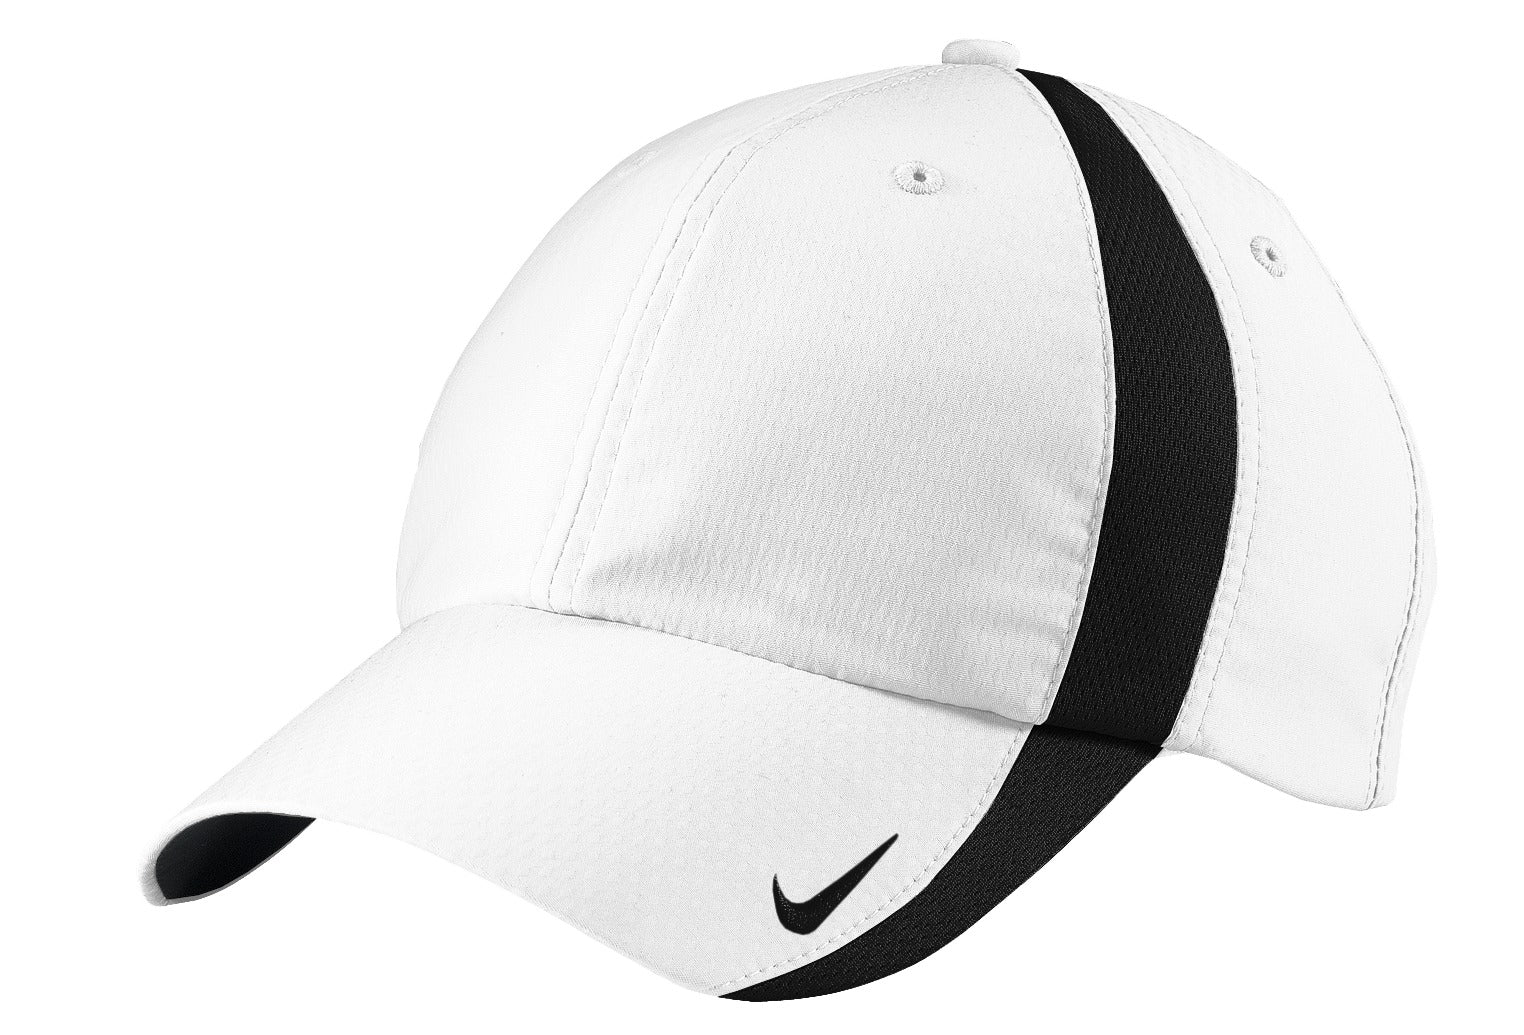 White / Black Nike Sphere Dry Cap